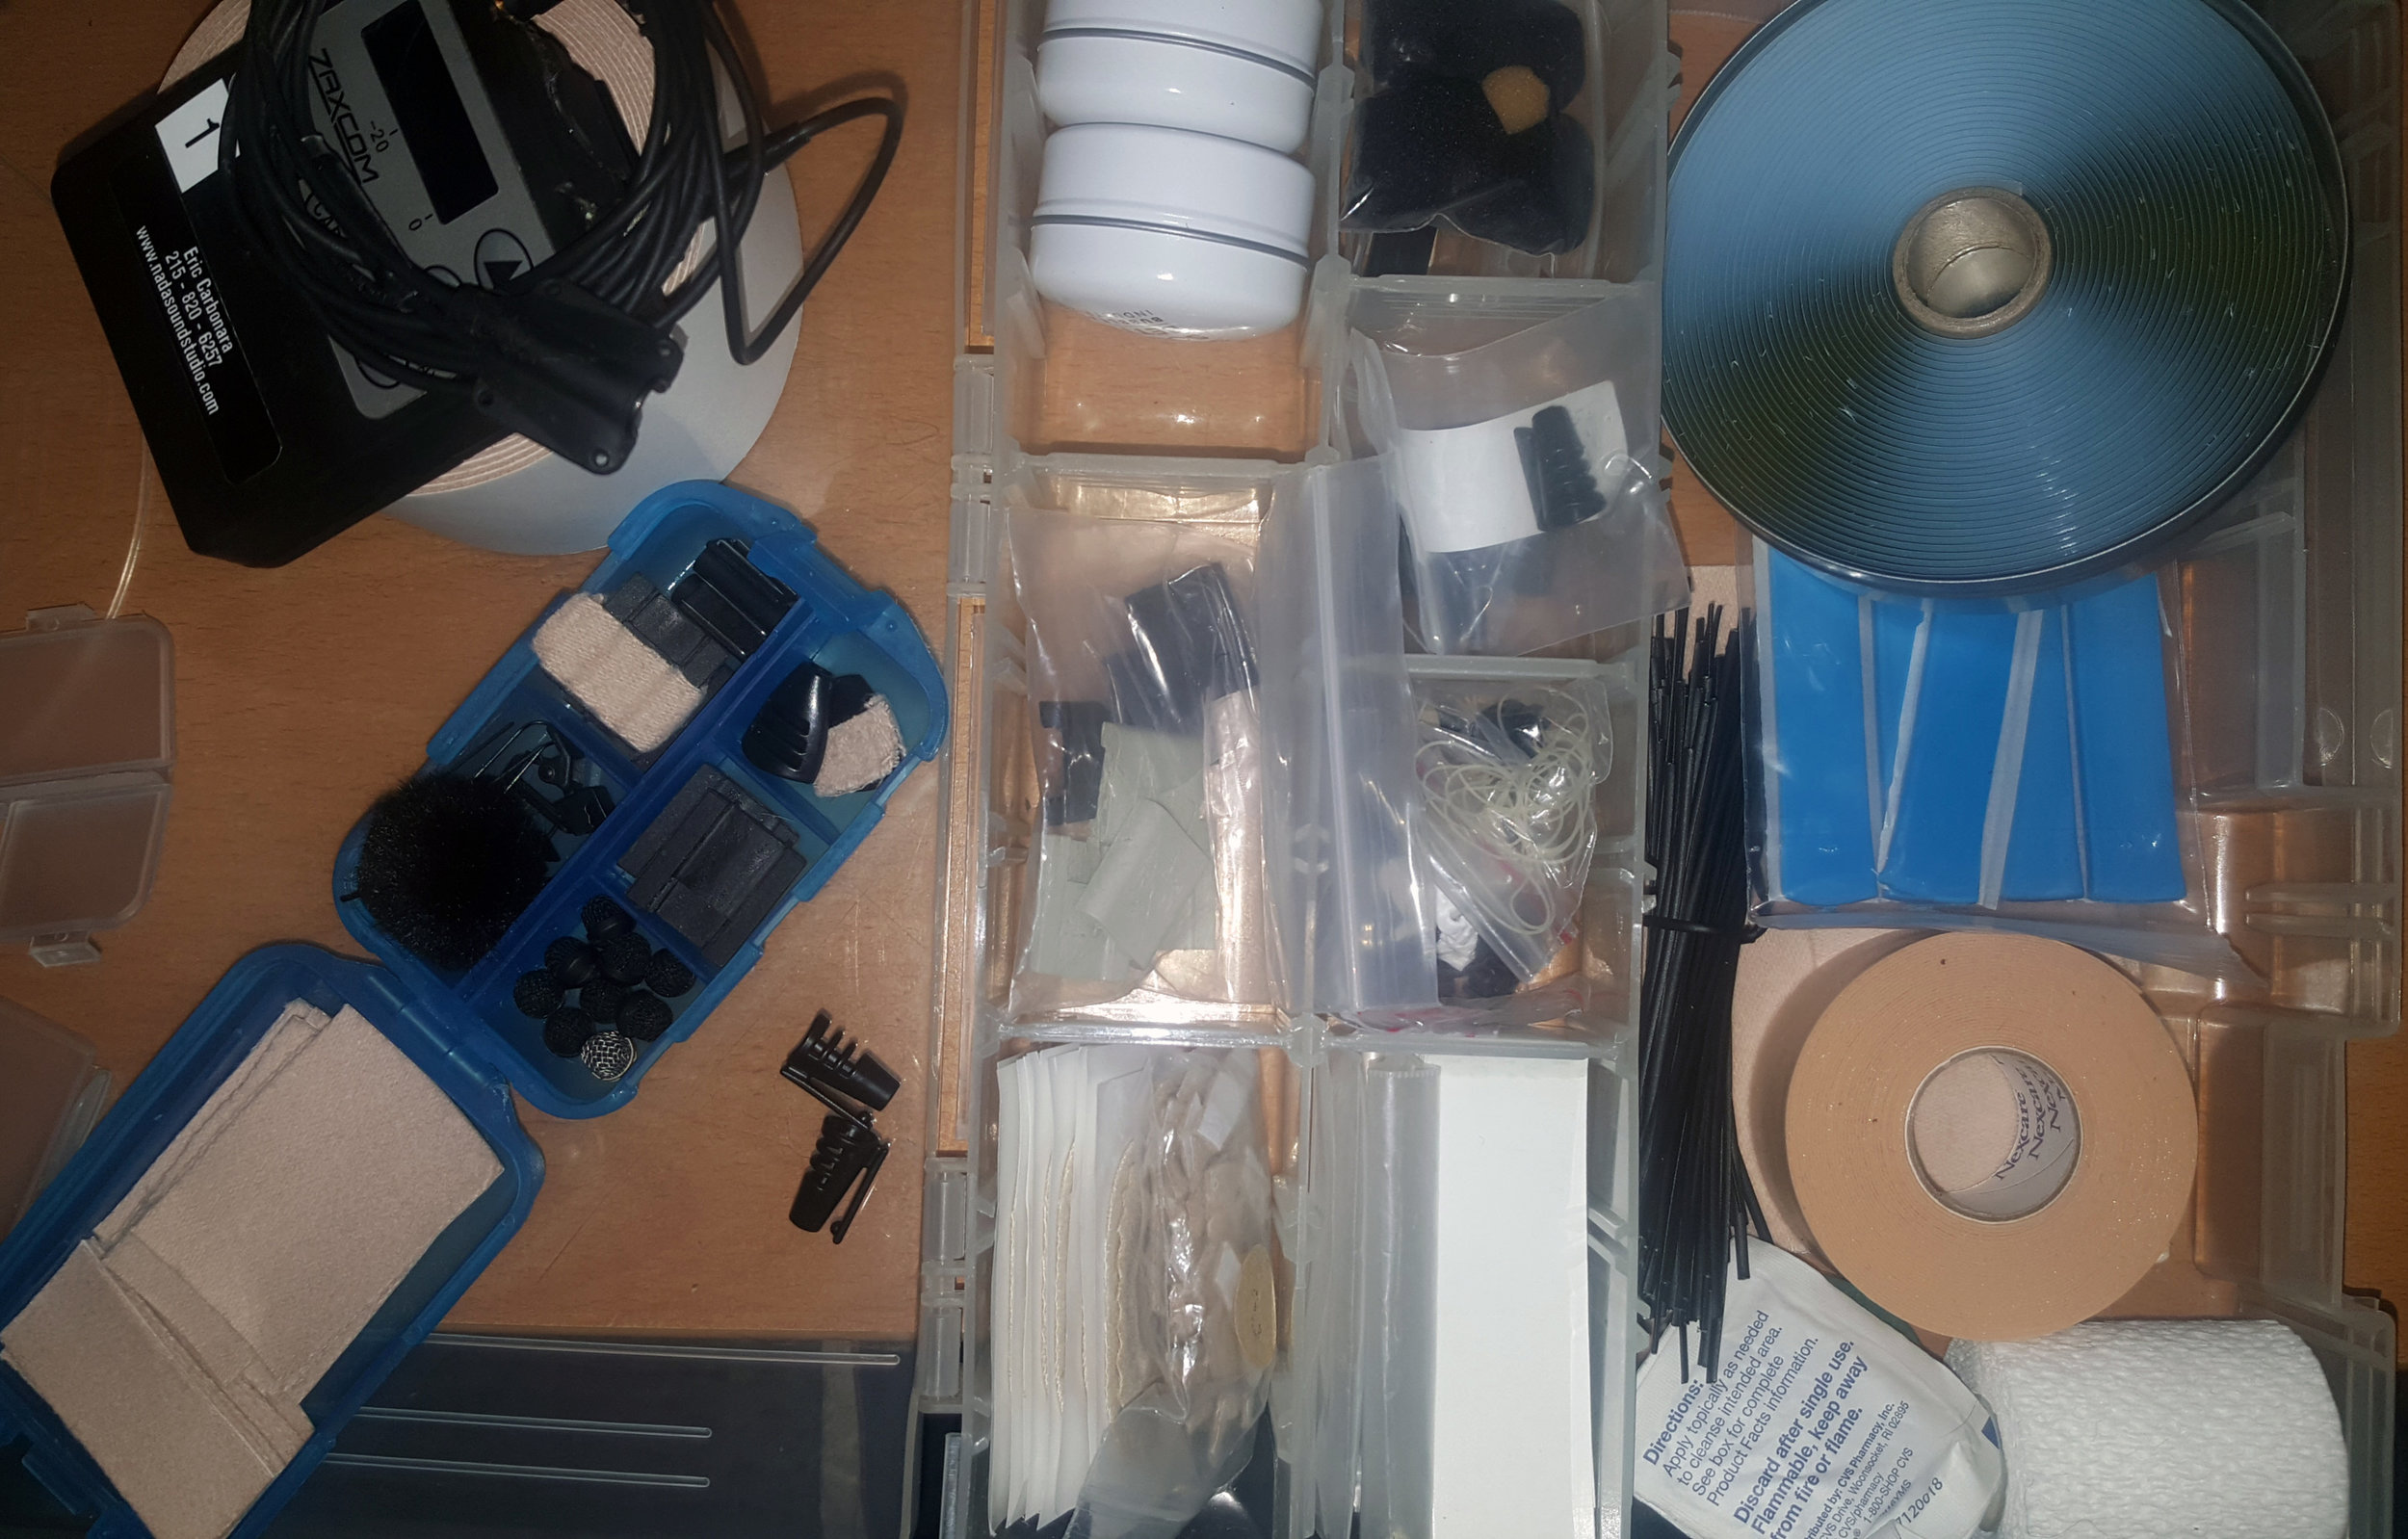 An assortment of mounts and adhesives that are typically used when wiring up an actor.